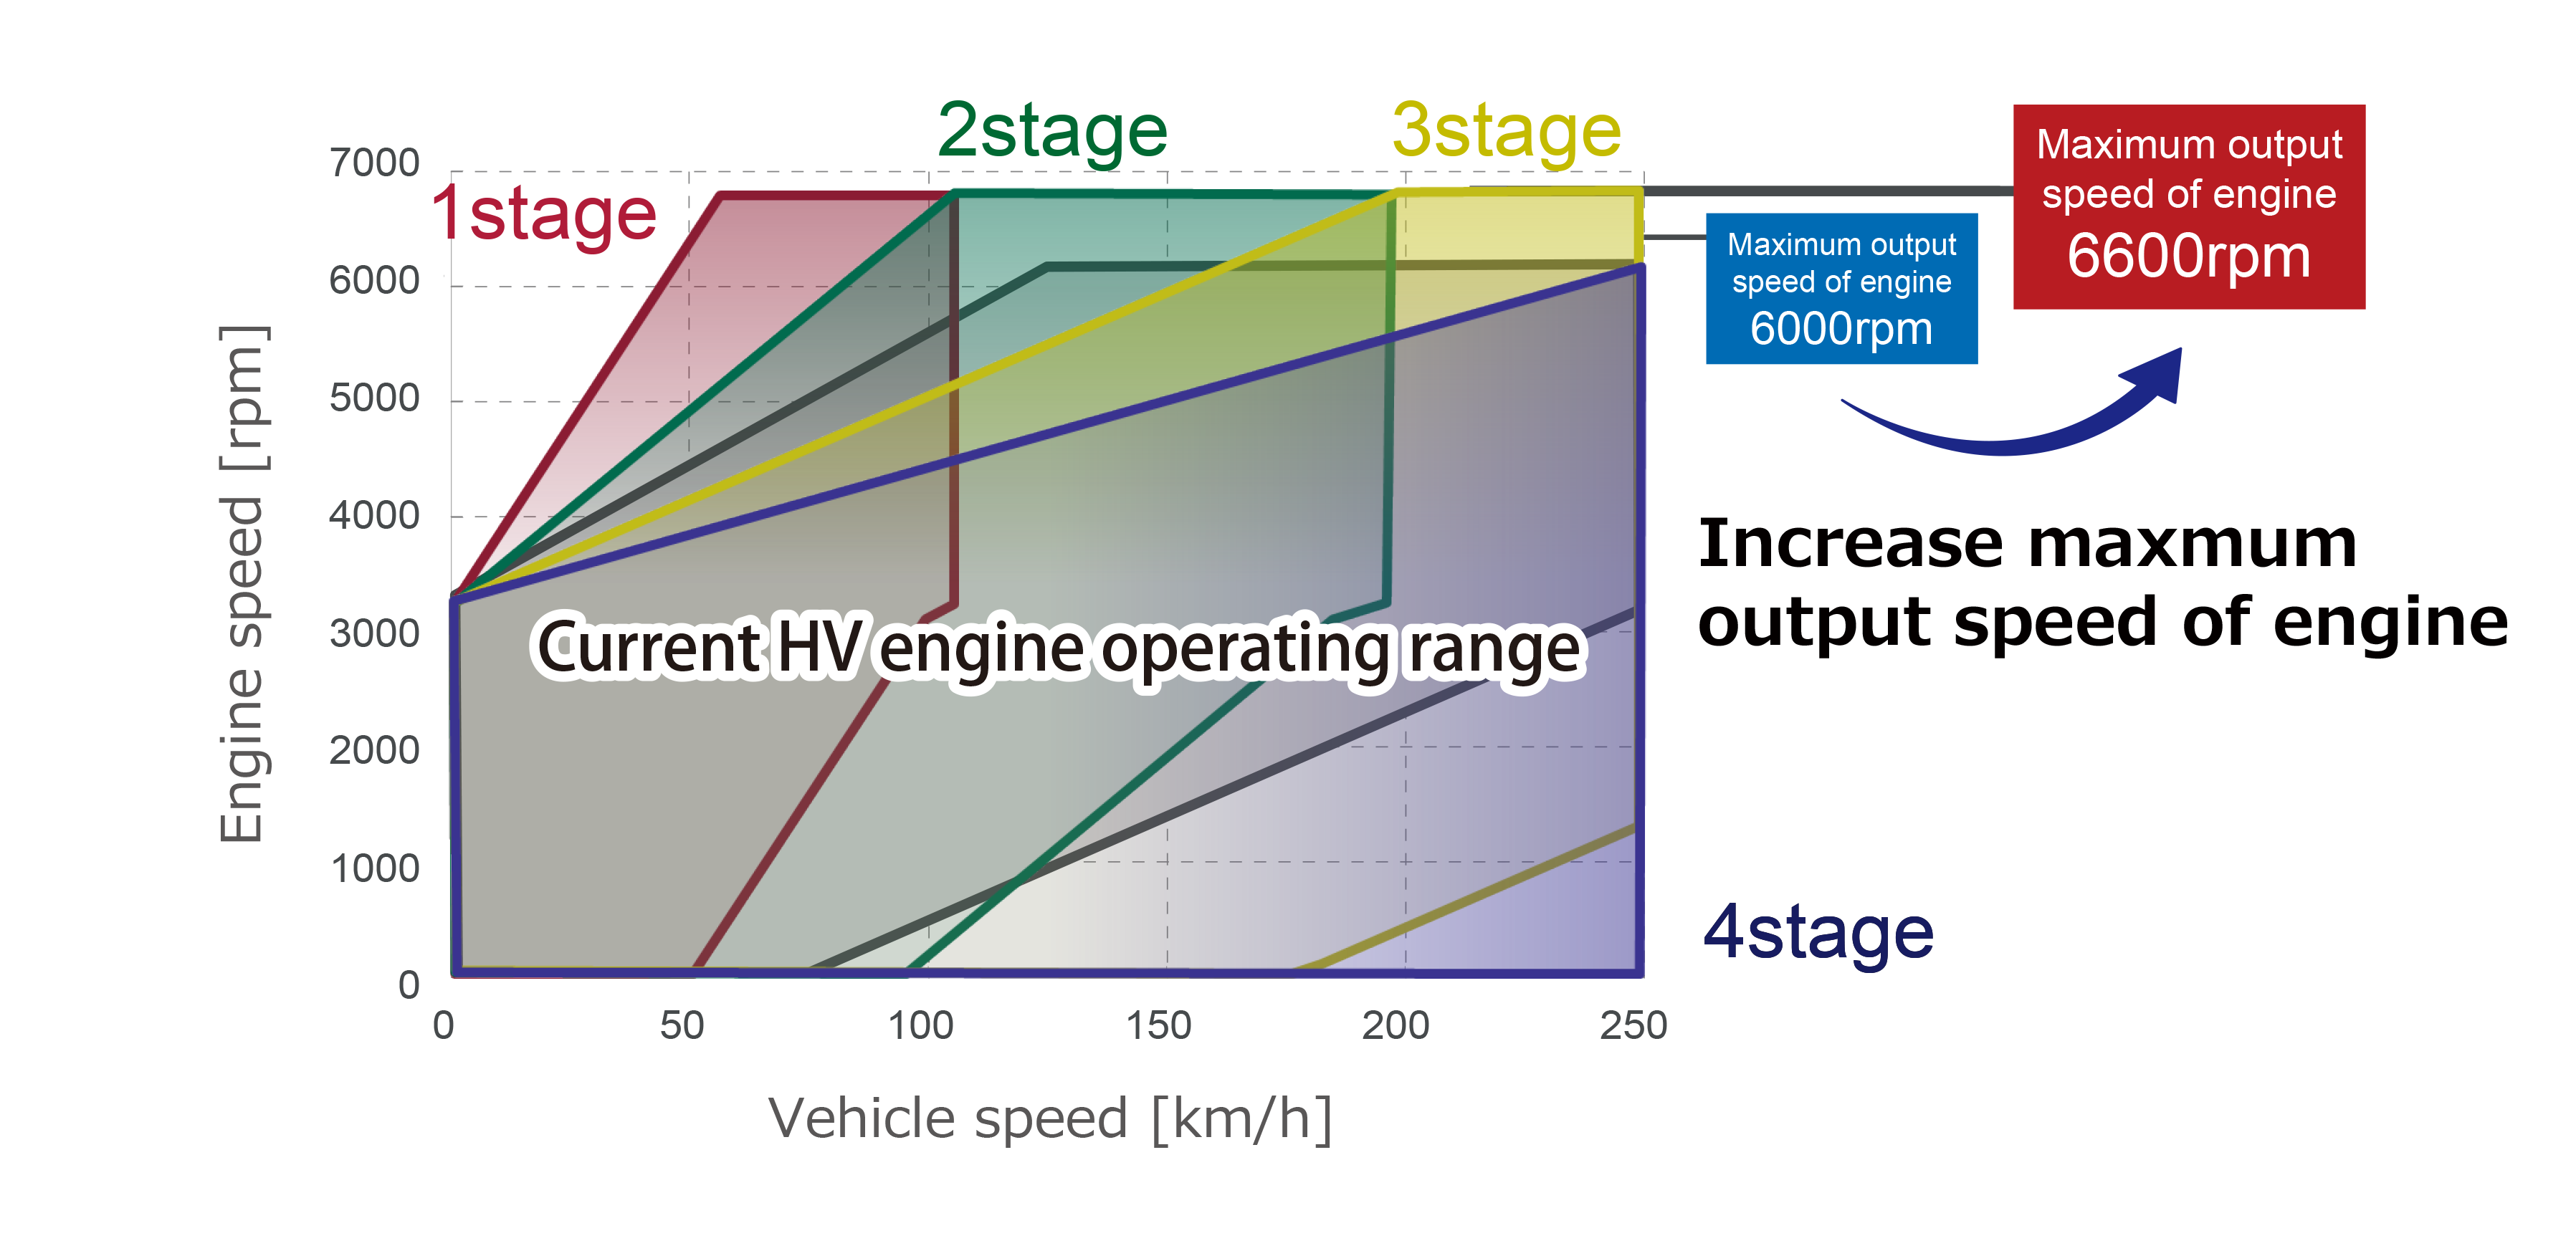 By adopting the Multi-Stage Shift Device to THS, the engine is able to operate in a wider speed range